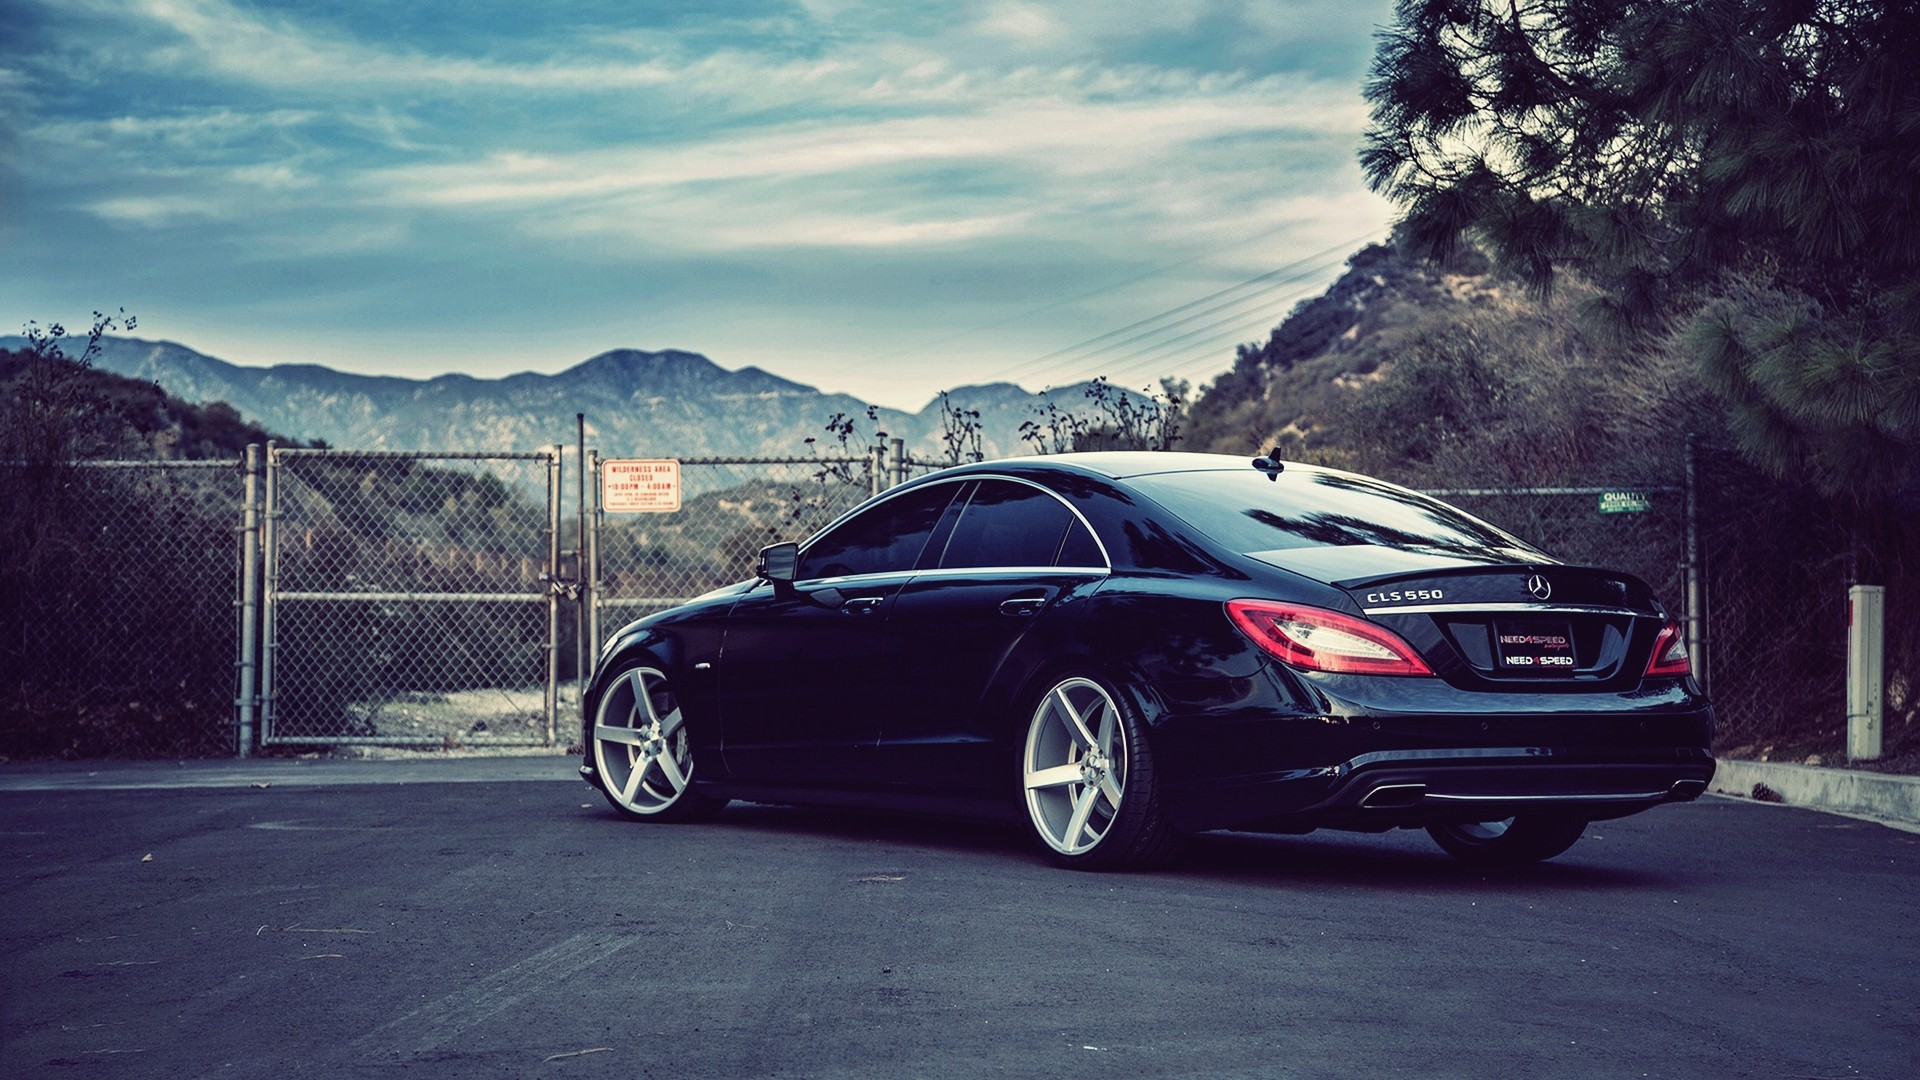 1920x1080 Mercedes-Benz CLS550 desktop PC and Mac wallpaper